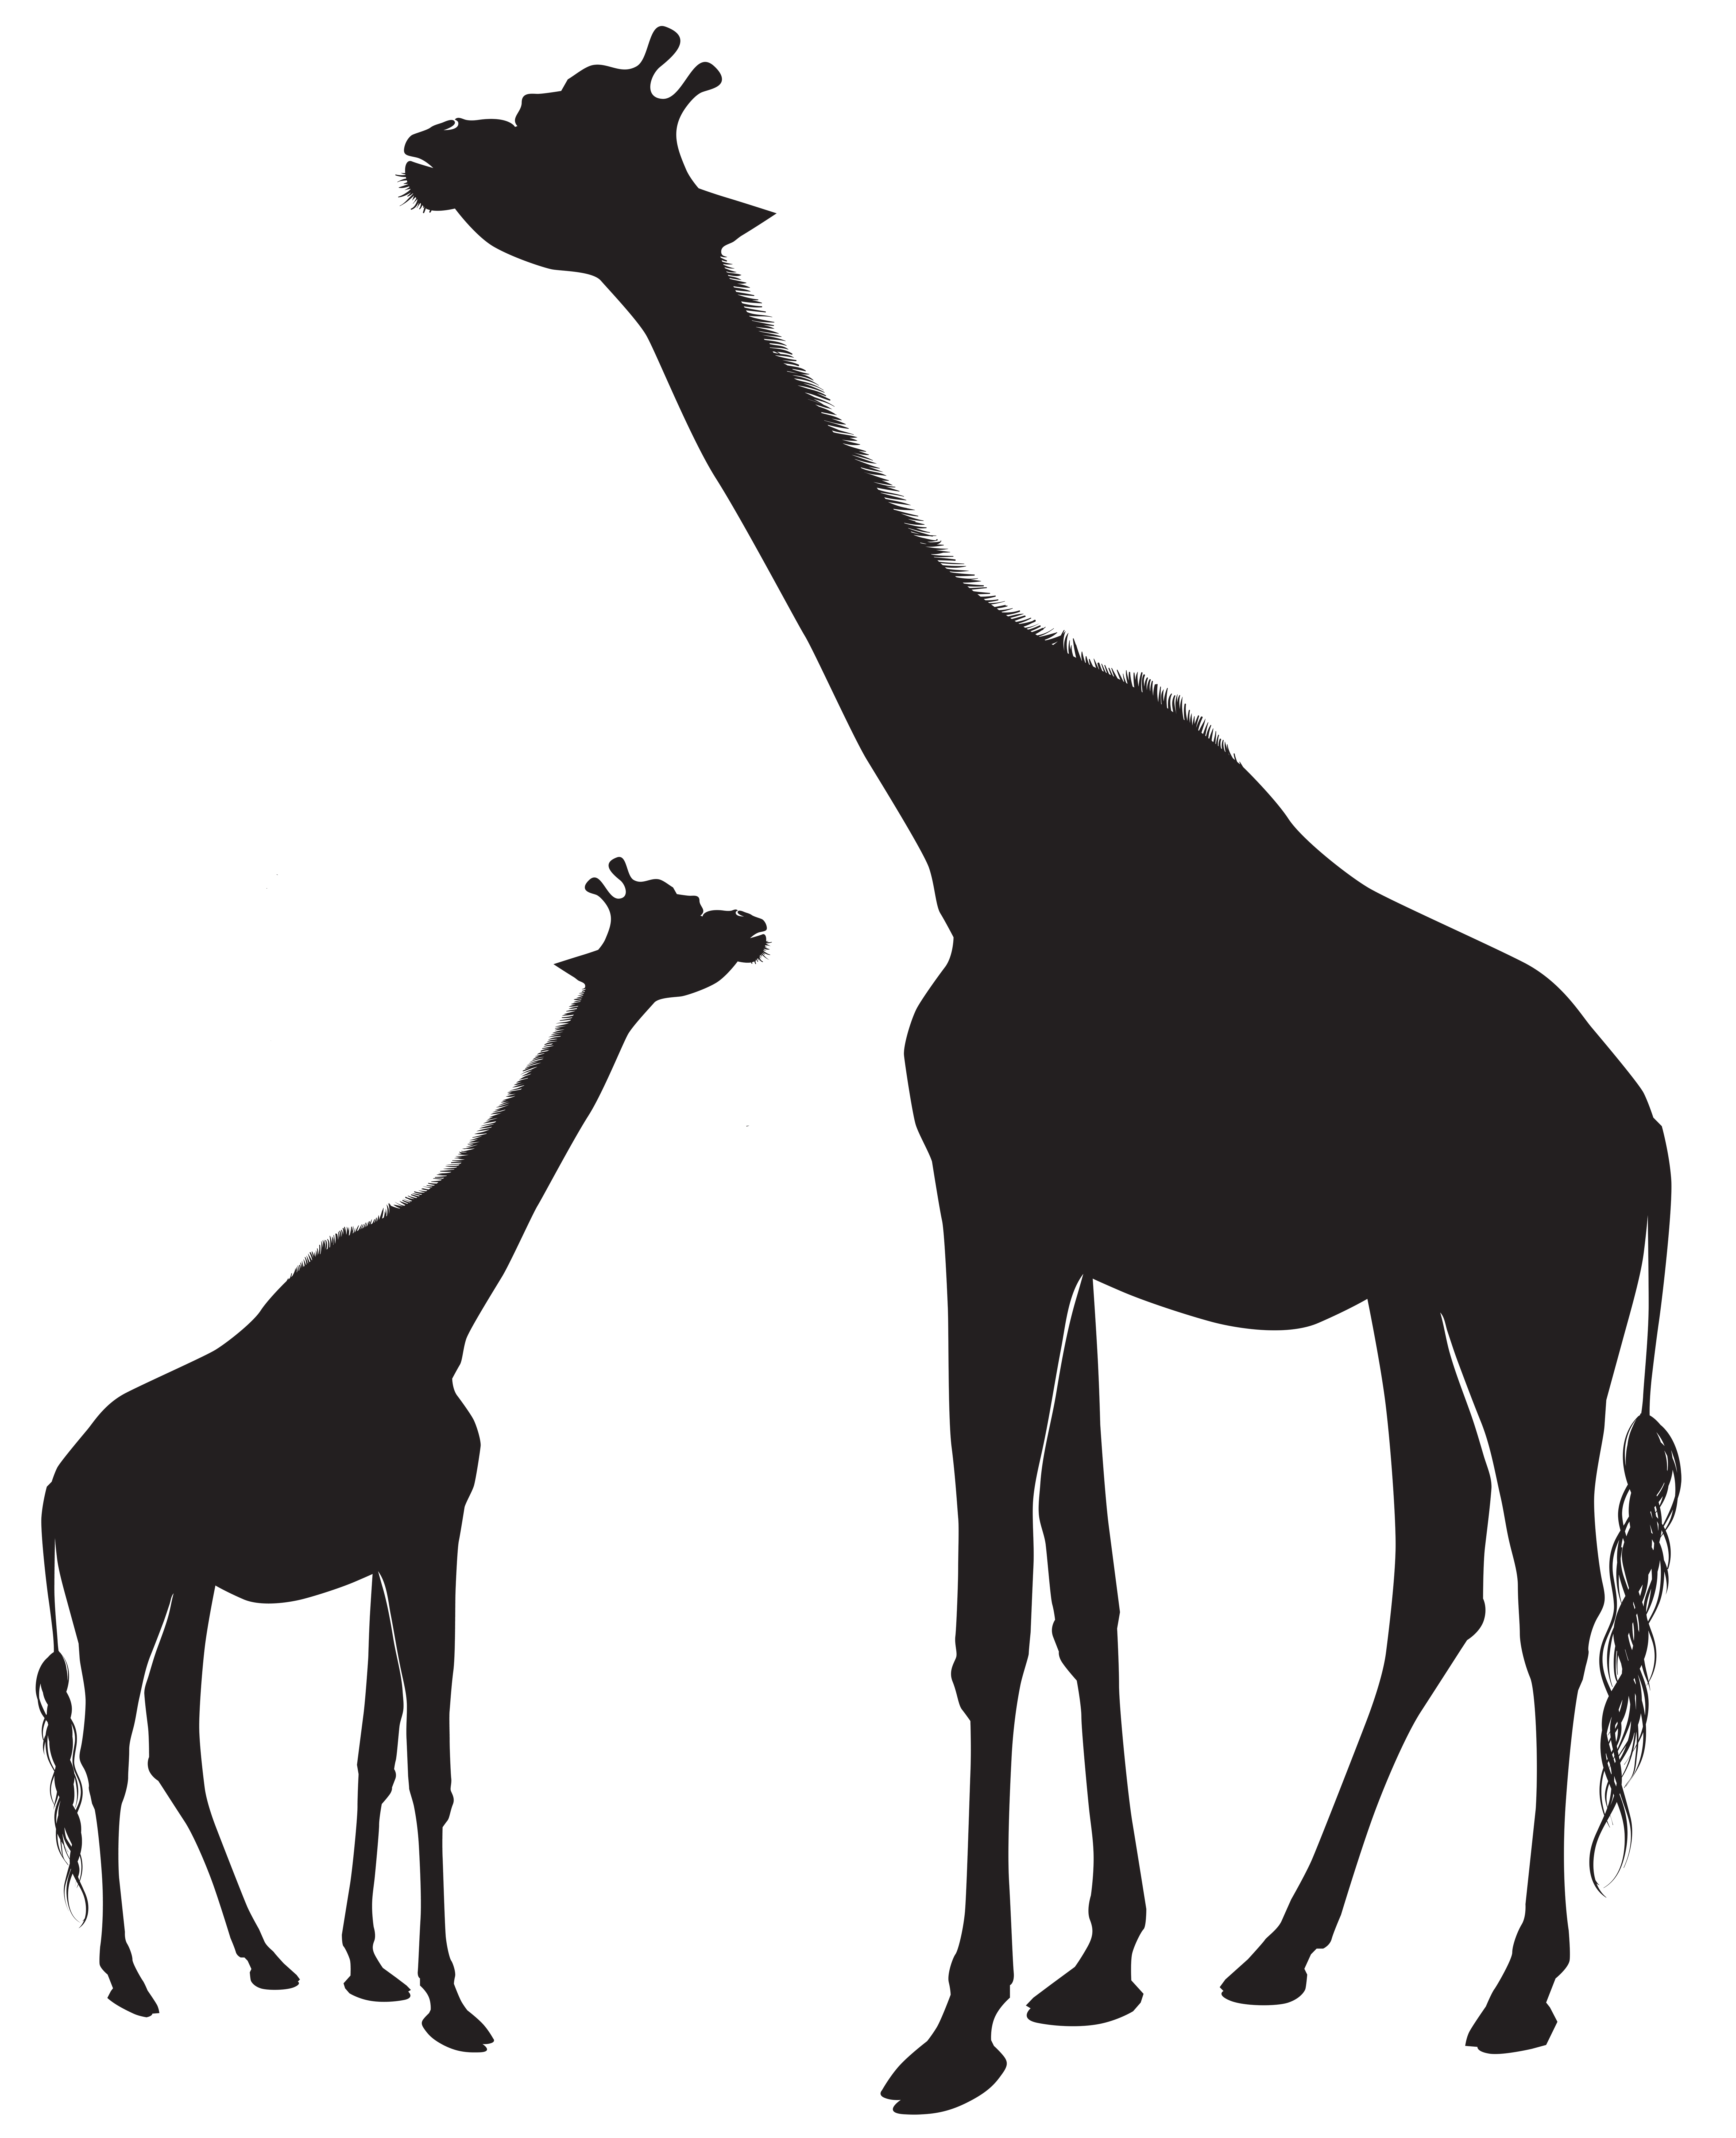 Cat clipart giraffe graphic royalty free library Giraffe Silhouette Clip Art at GetDrawings.com | Free for personal ... graphic royalty free library